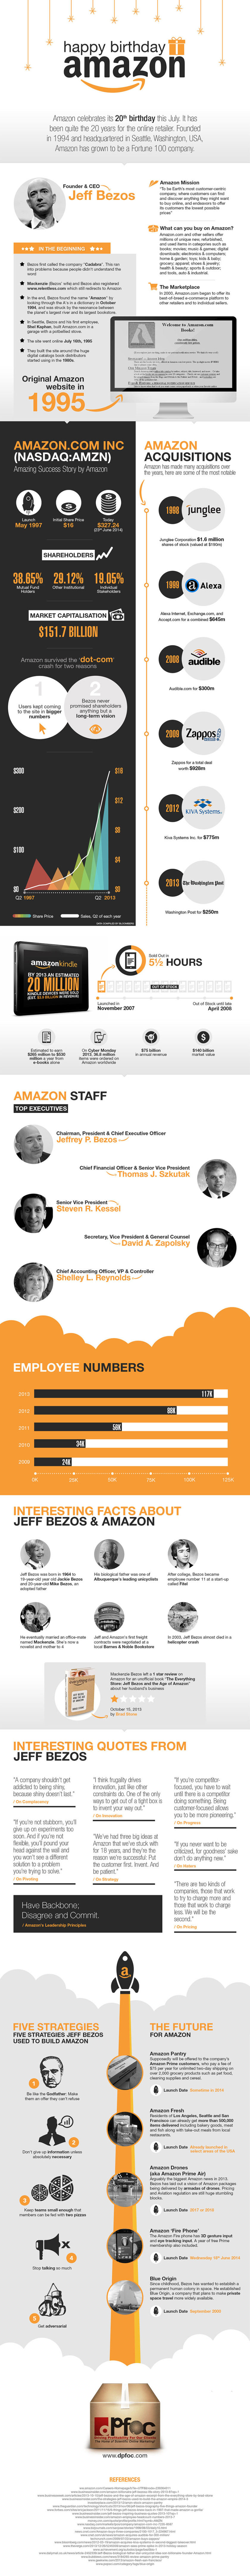 #Infographic - 20 years of #Amazon by the numbers